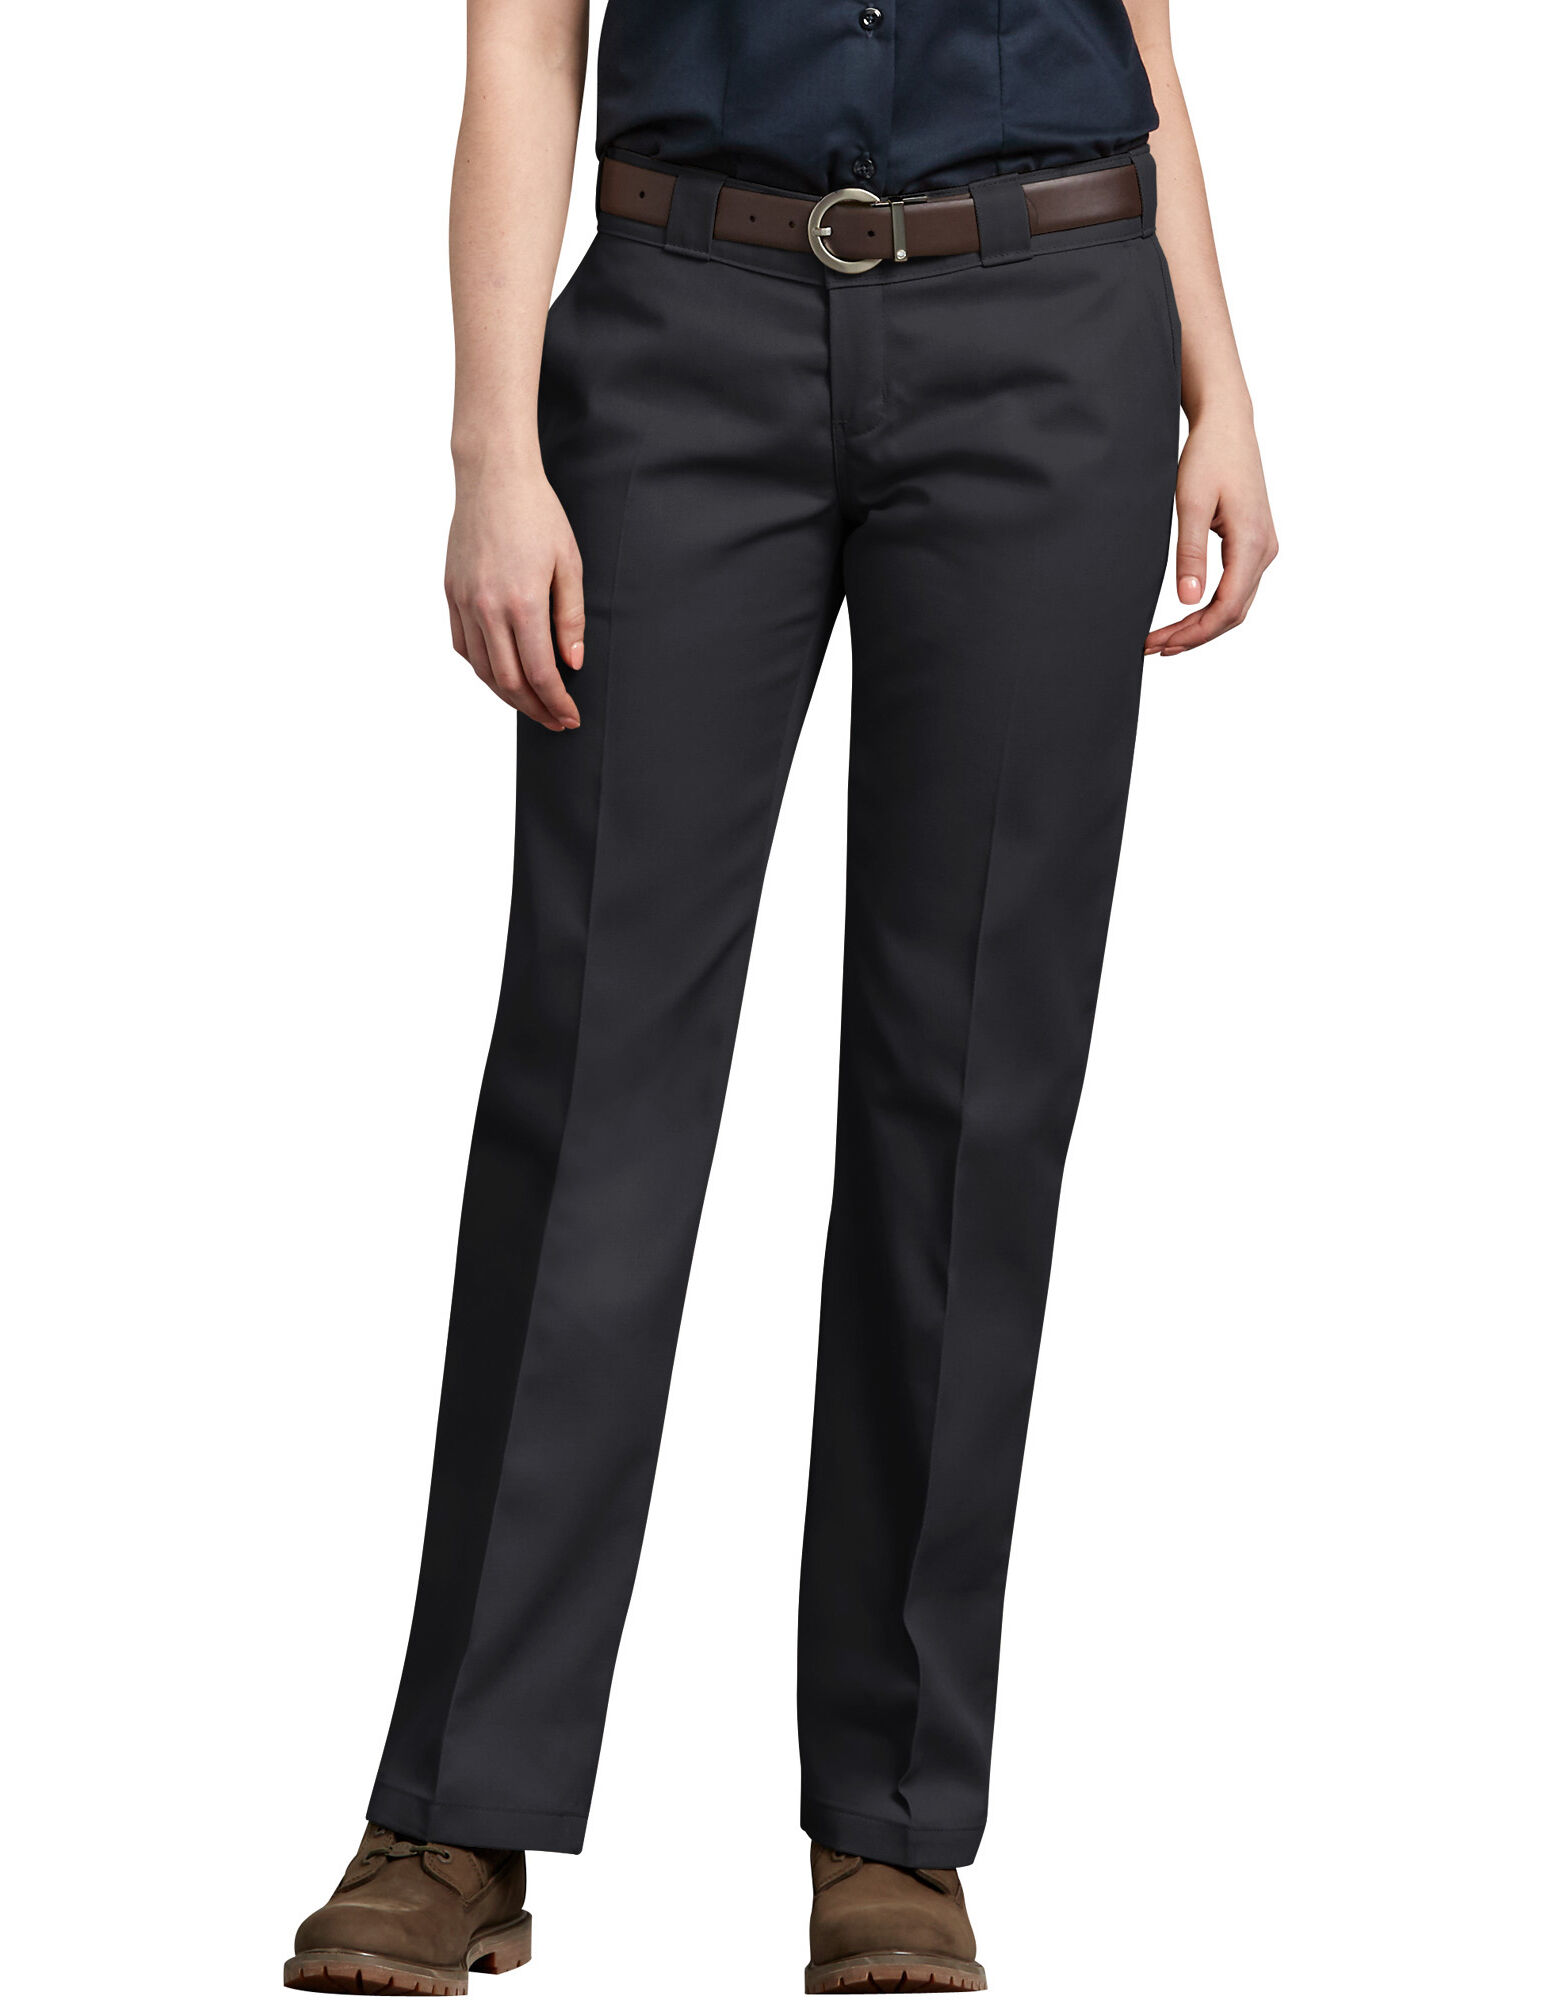 Awesome In Defense Of Black Work Slacks  HuffPost